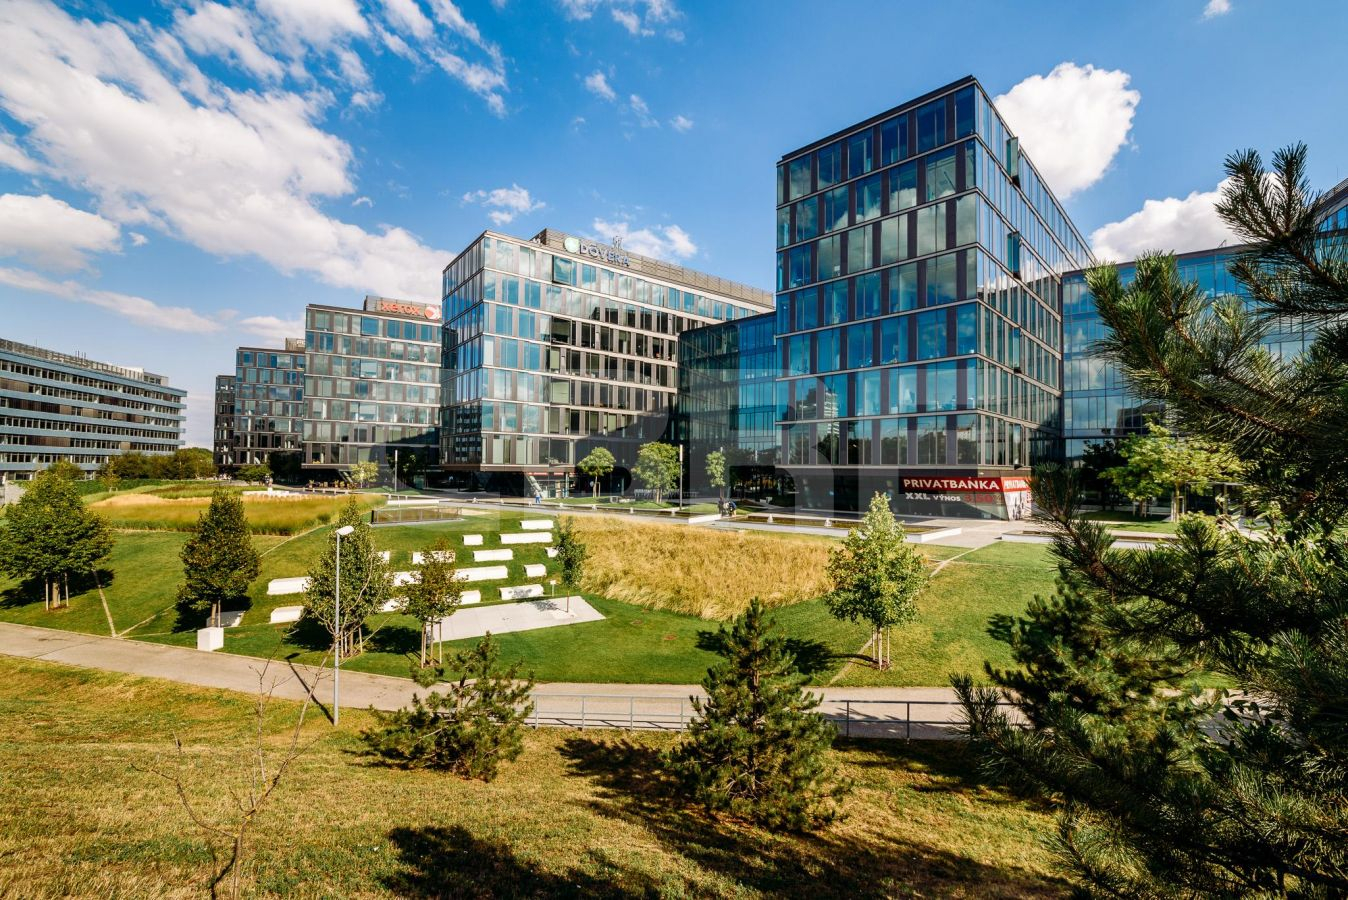 Digital Park phase II, Bratislava - Petržalka | Offices for rent by CBRE | 2